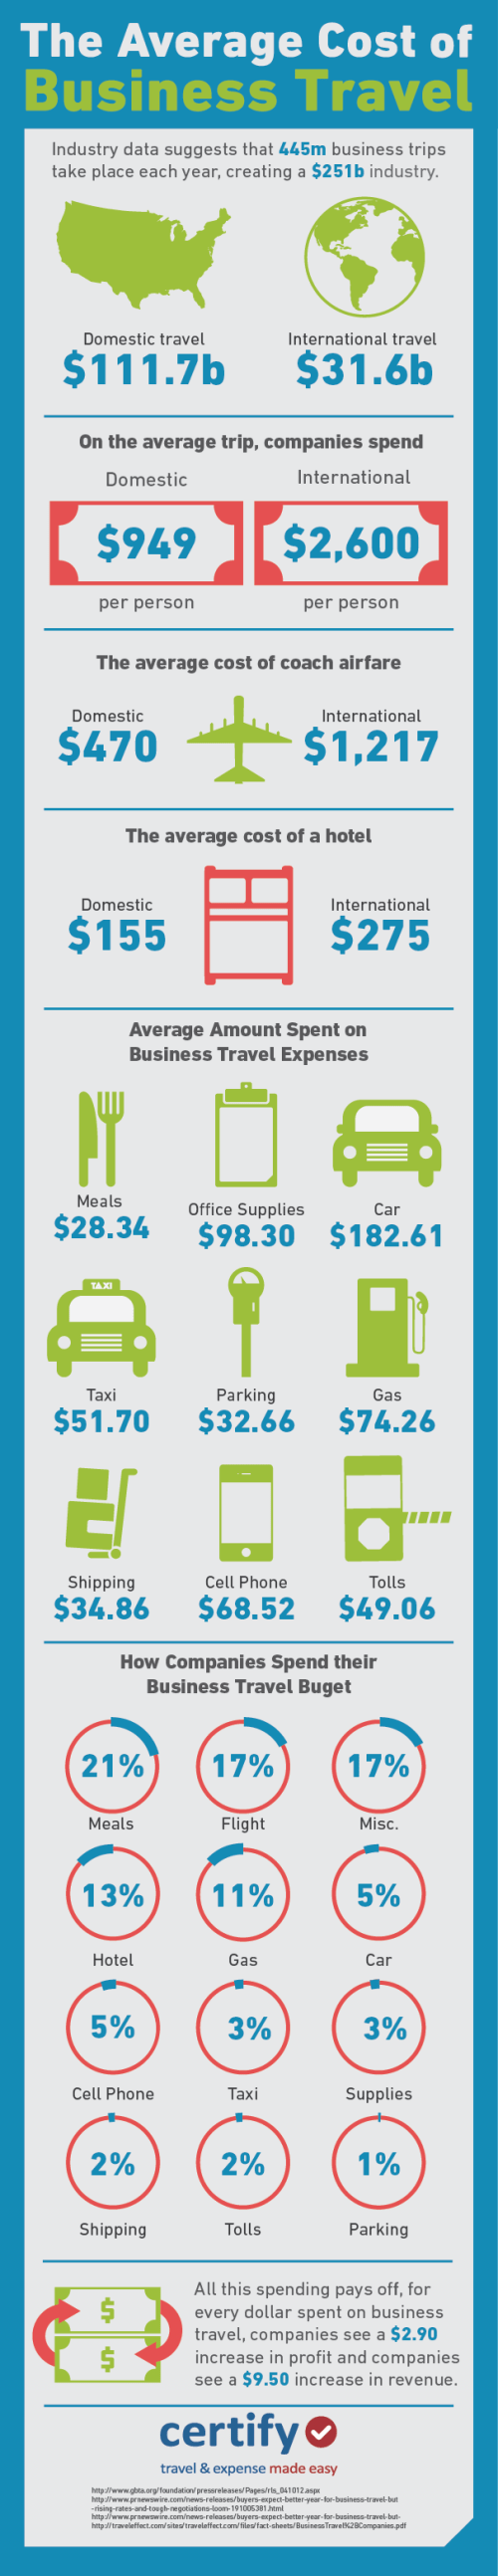 the-average-cost-of-business-travel_51cda4cac09c9